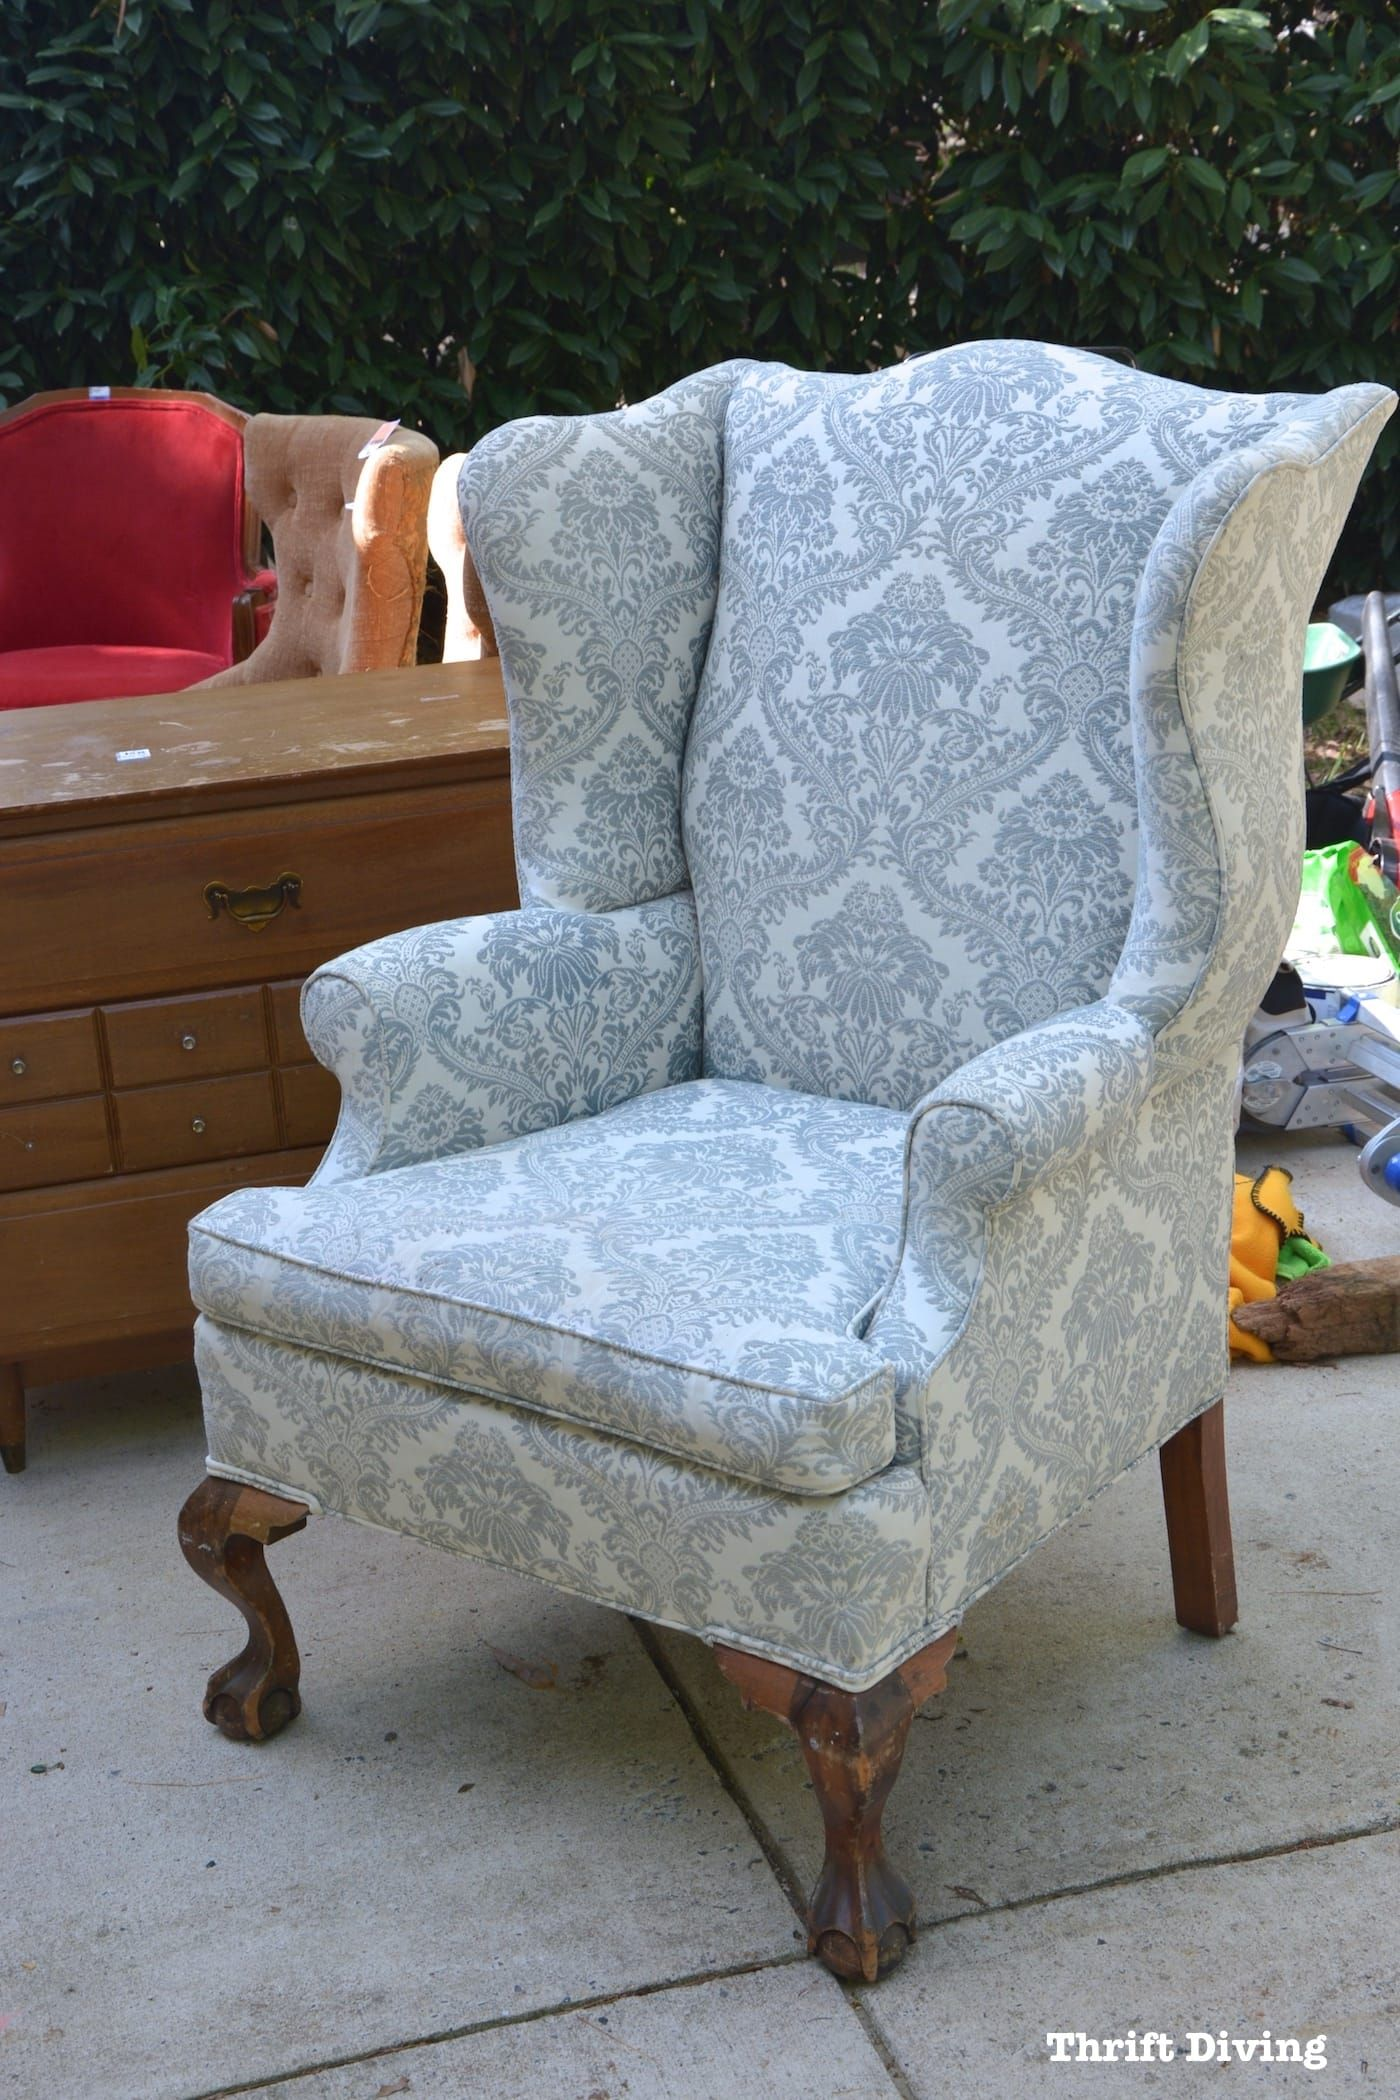 How To Reupholster A Wingback Chair Step By Step Video Tutorials Reupholster Chair Diy Wing Chair Upholstery Upholstered Chairs Diy